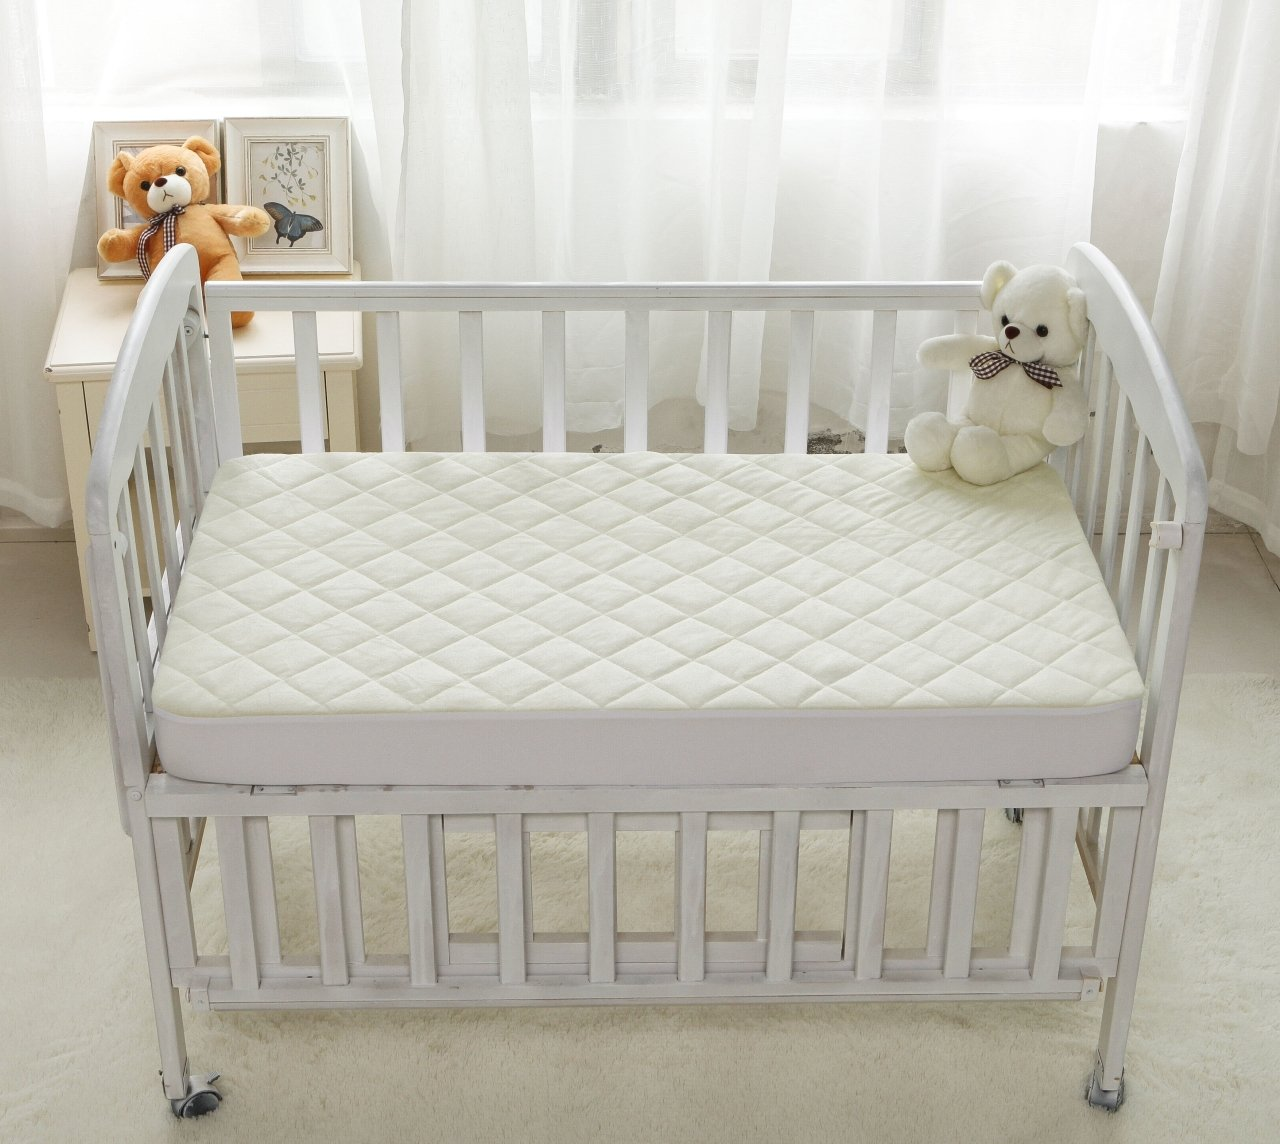 crib greenbudsgiveaway well greenbuds organic rounded ny pad mattress